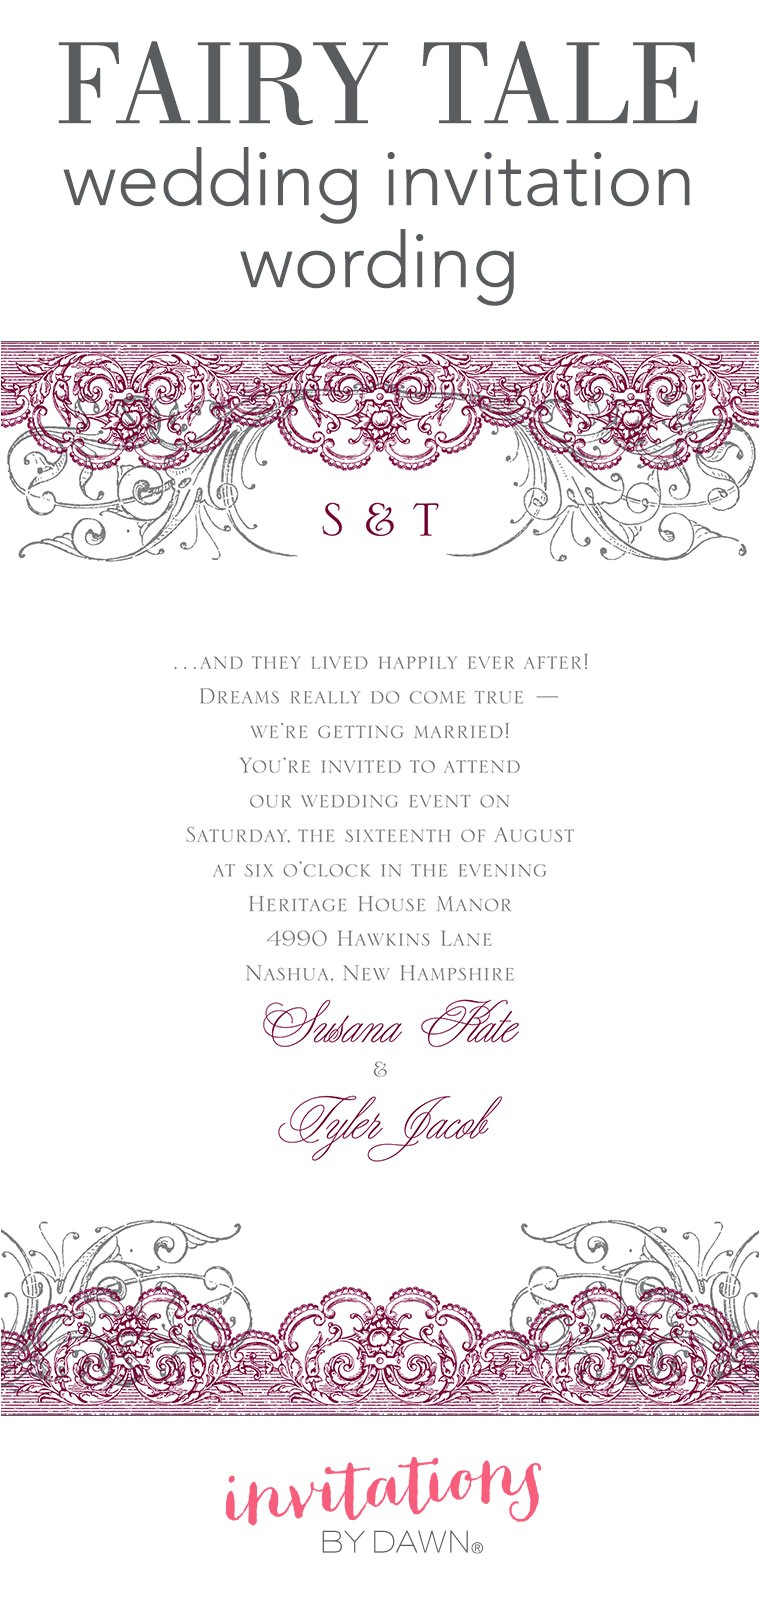 fairy tale wedding invitation wording